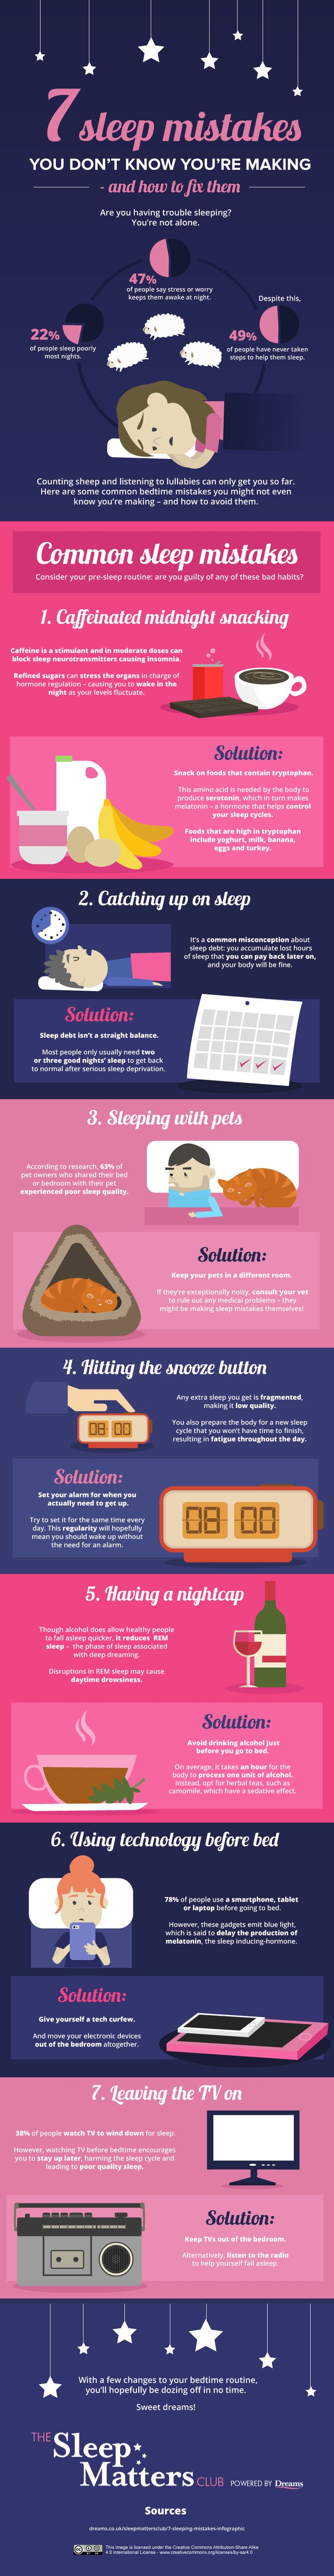 7 Sleep Mistakes You Don't Know You're Making and How to Fix Them #infographic #Sleep #Health